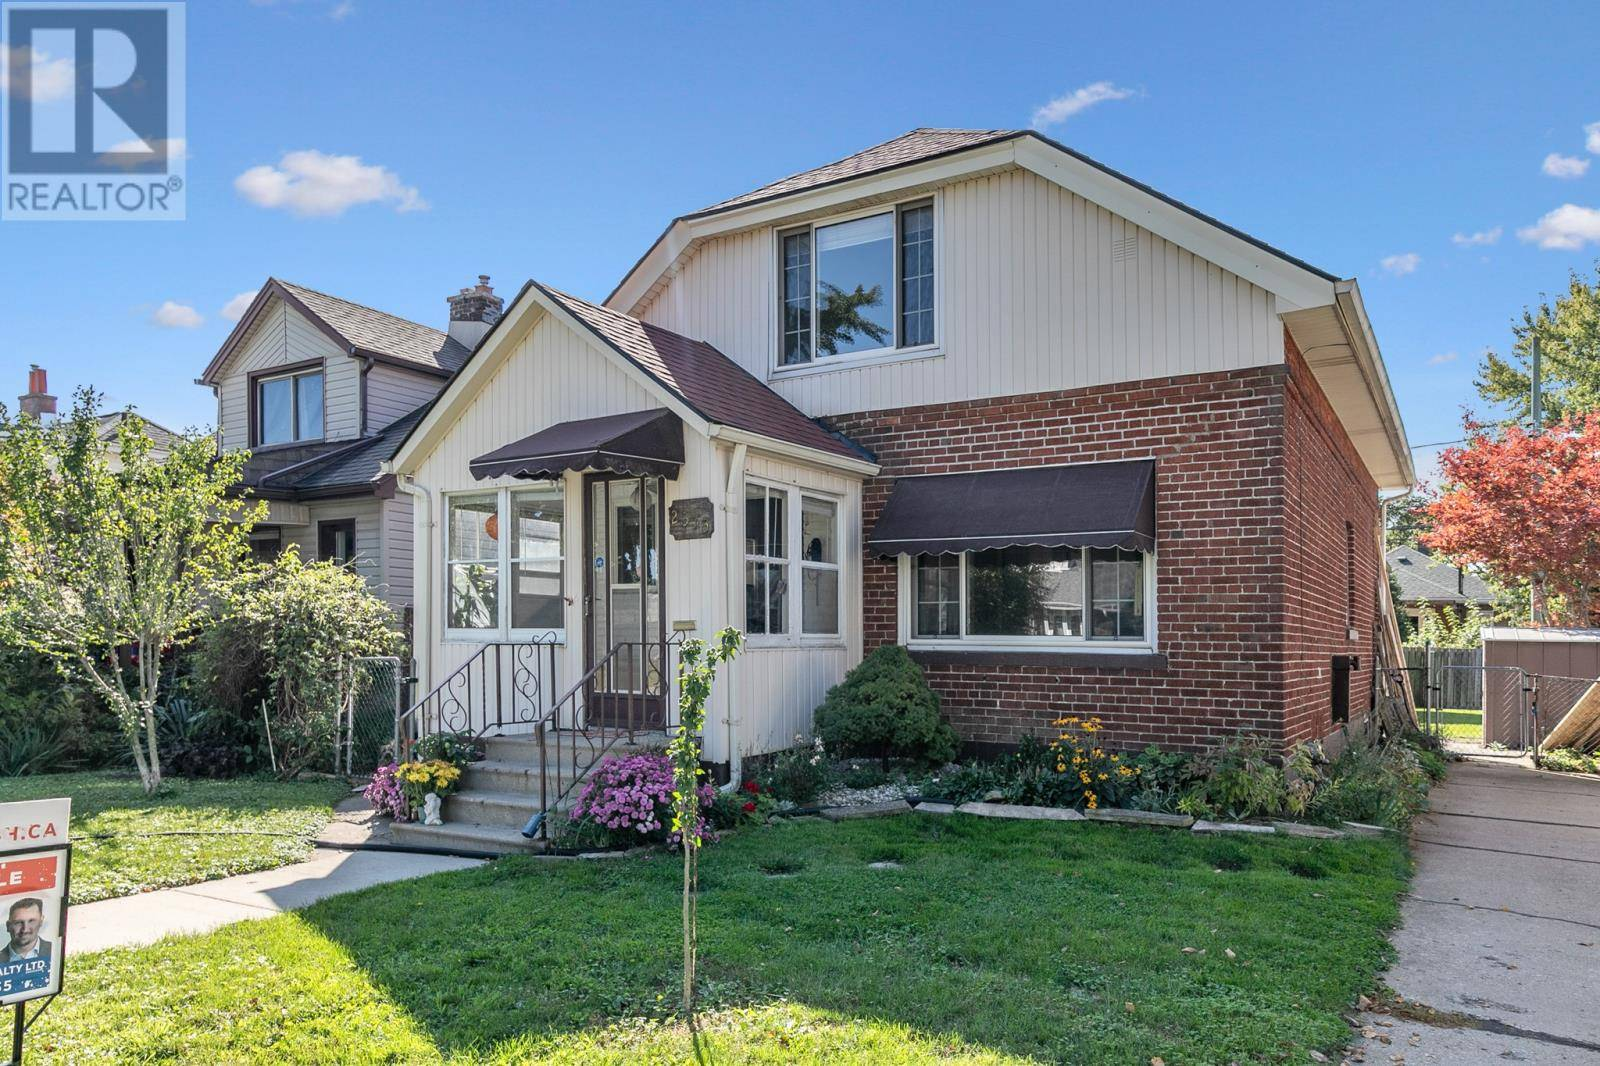 House for sale at 2373 Turner Rd Windsor Ontario - MLS: 19026804